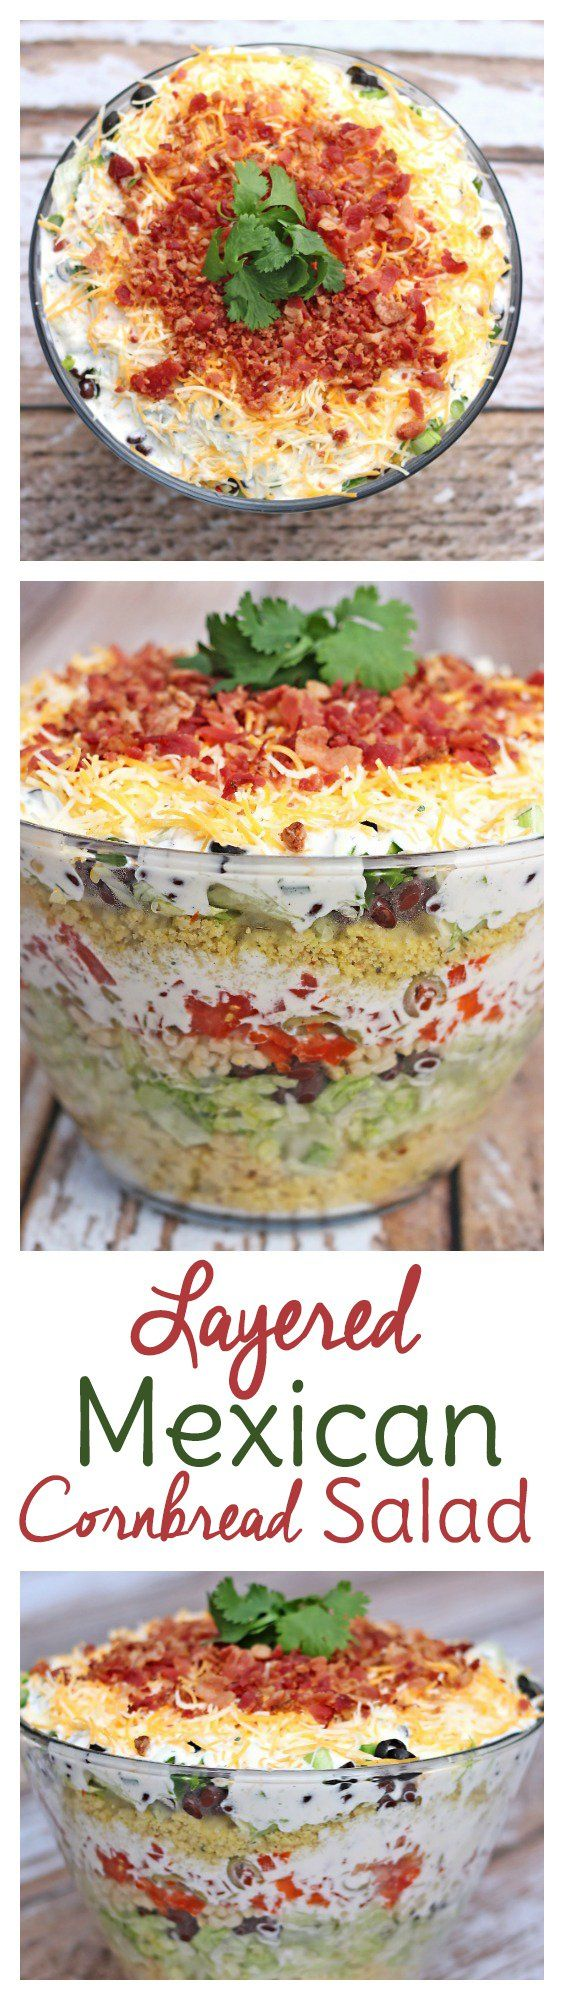 My aunt's original recipe, this Layered Mexican Cornbread Salad Recipe is HUGE hit at potlucks. There are never leftovers!